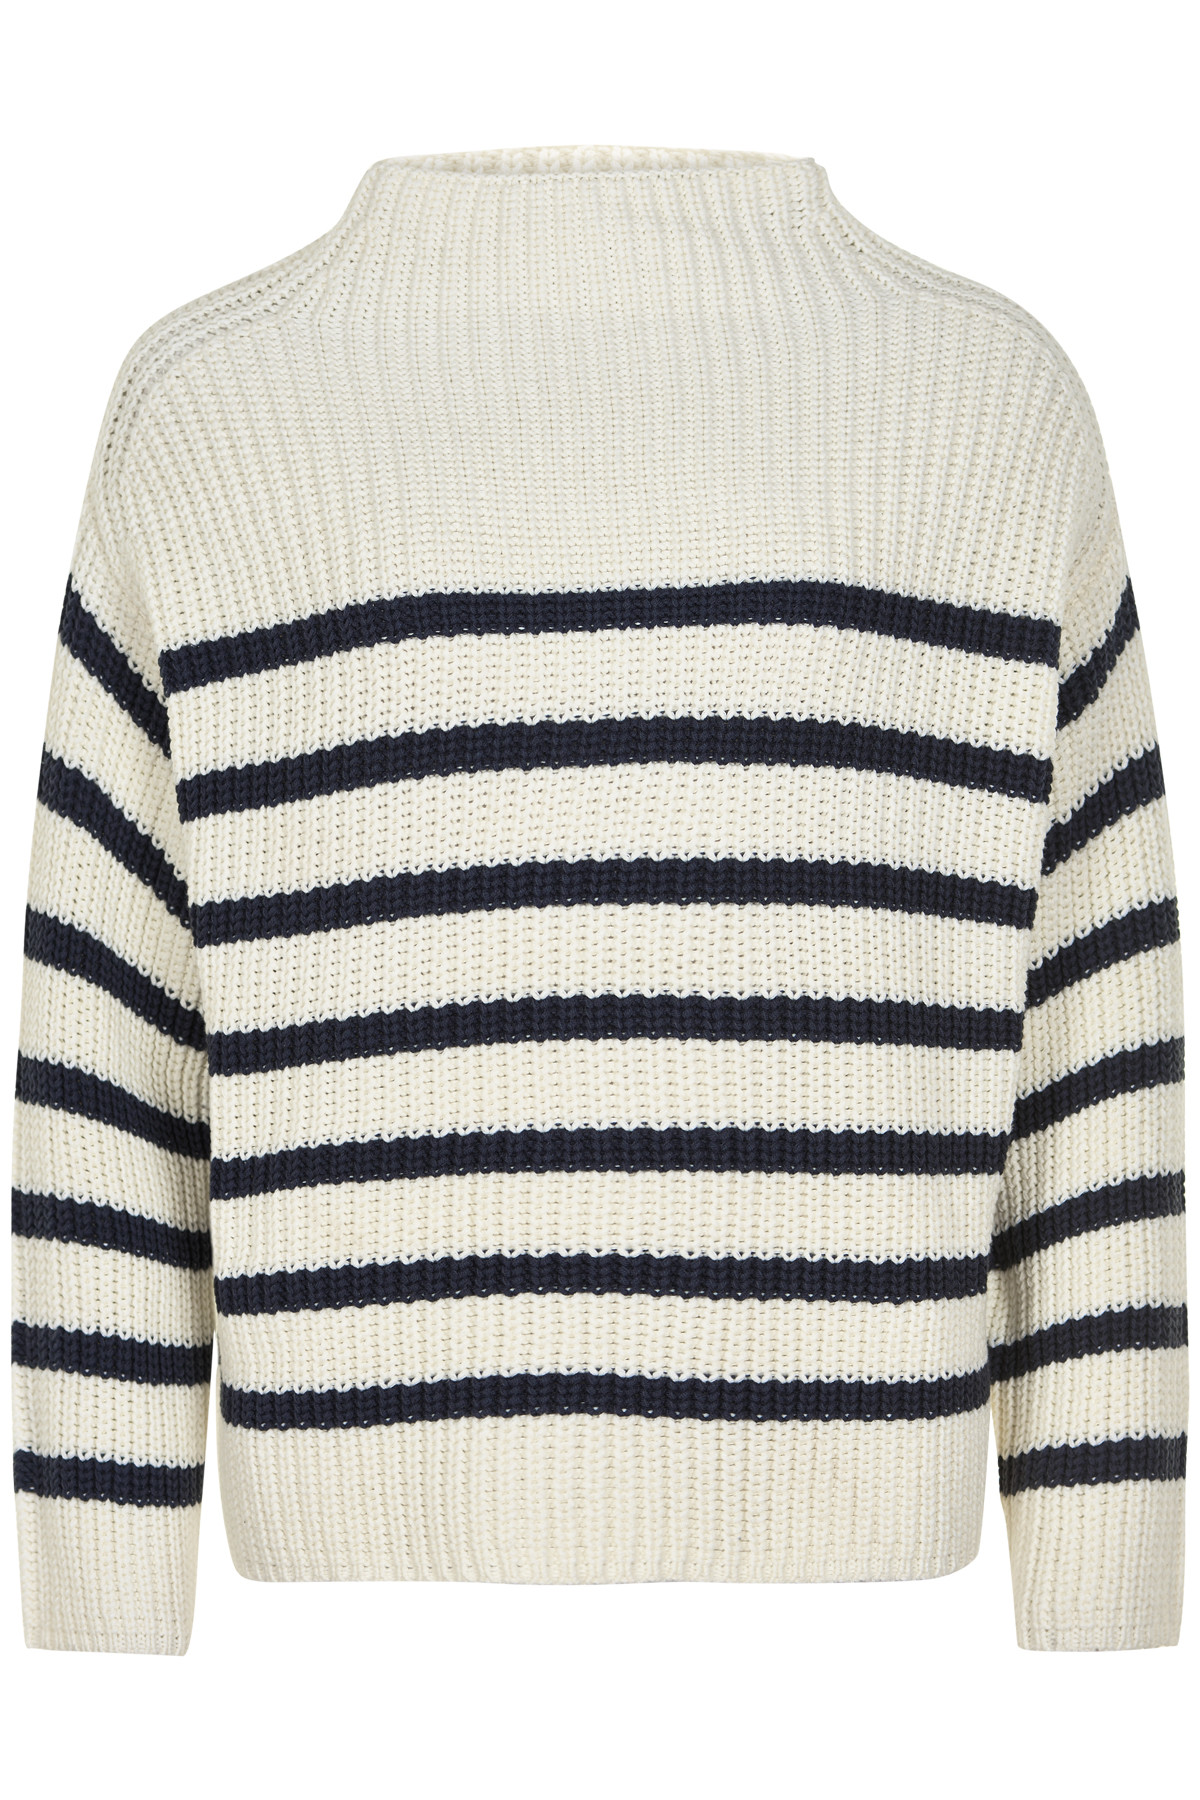 Image of   AND LESS JIS PULLOVER 5419210 (W.Allysum, XL)